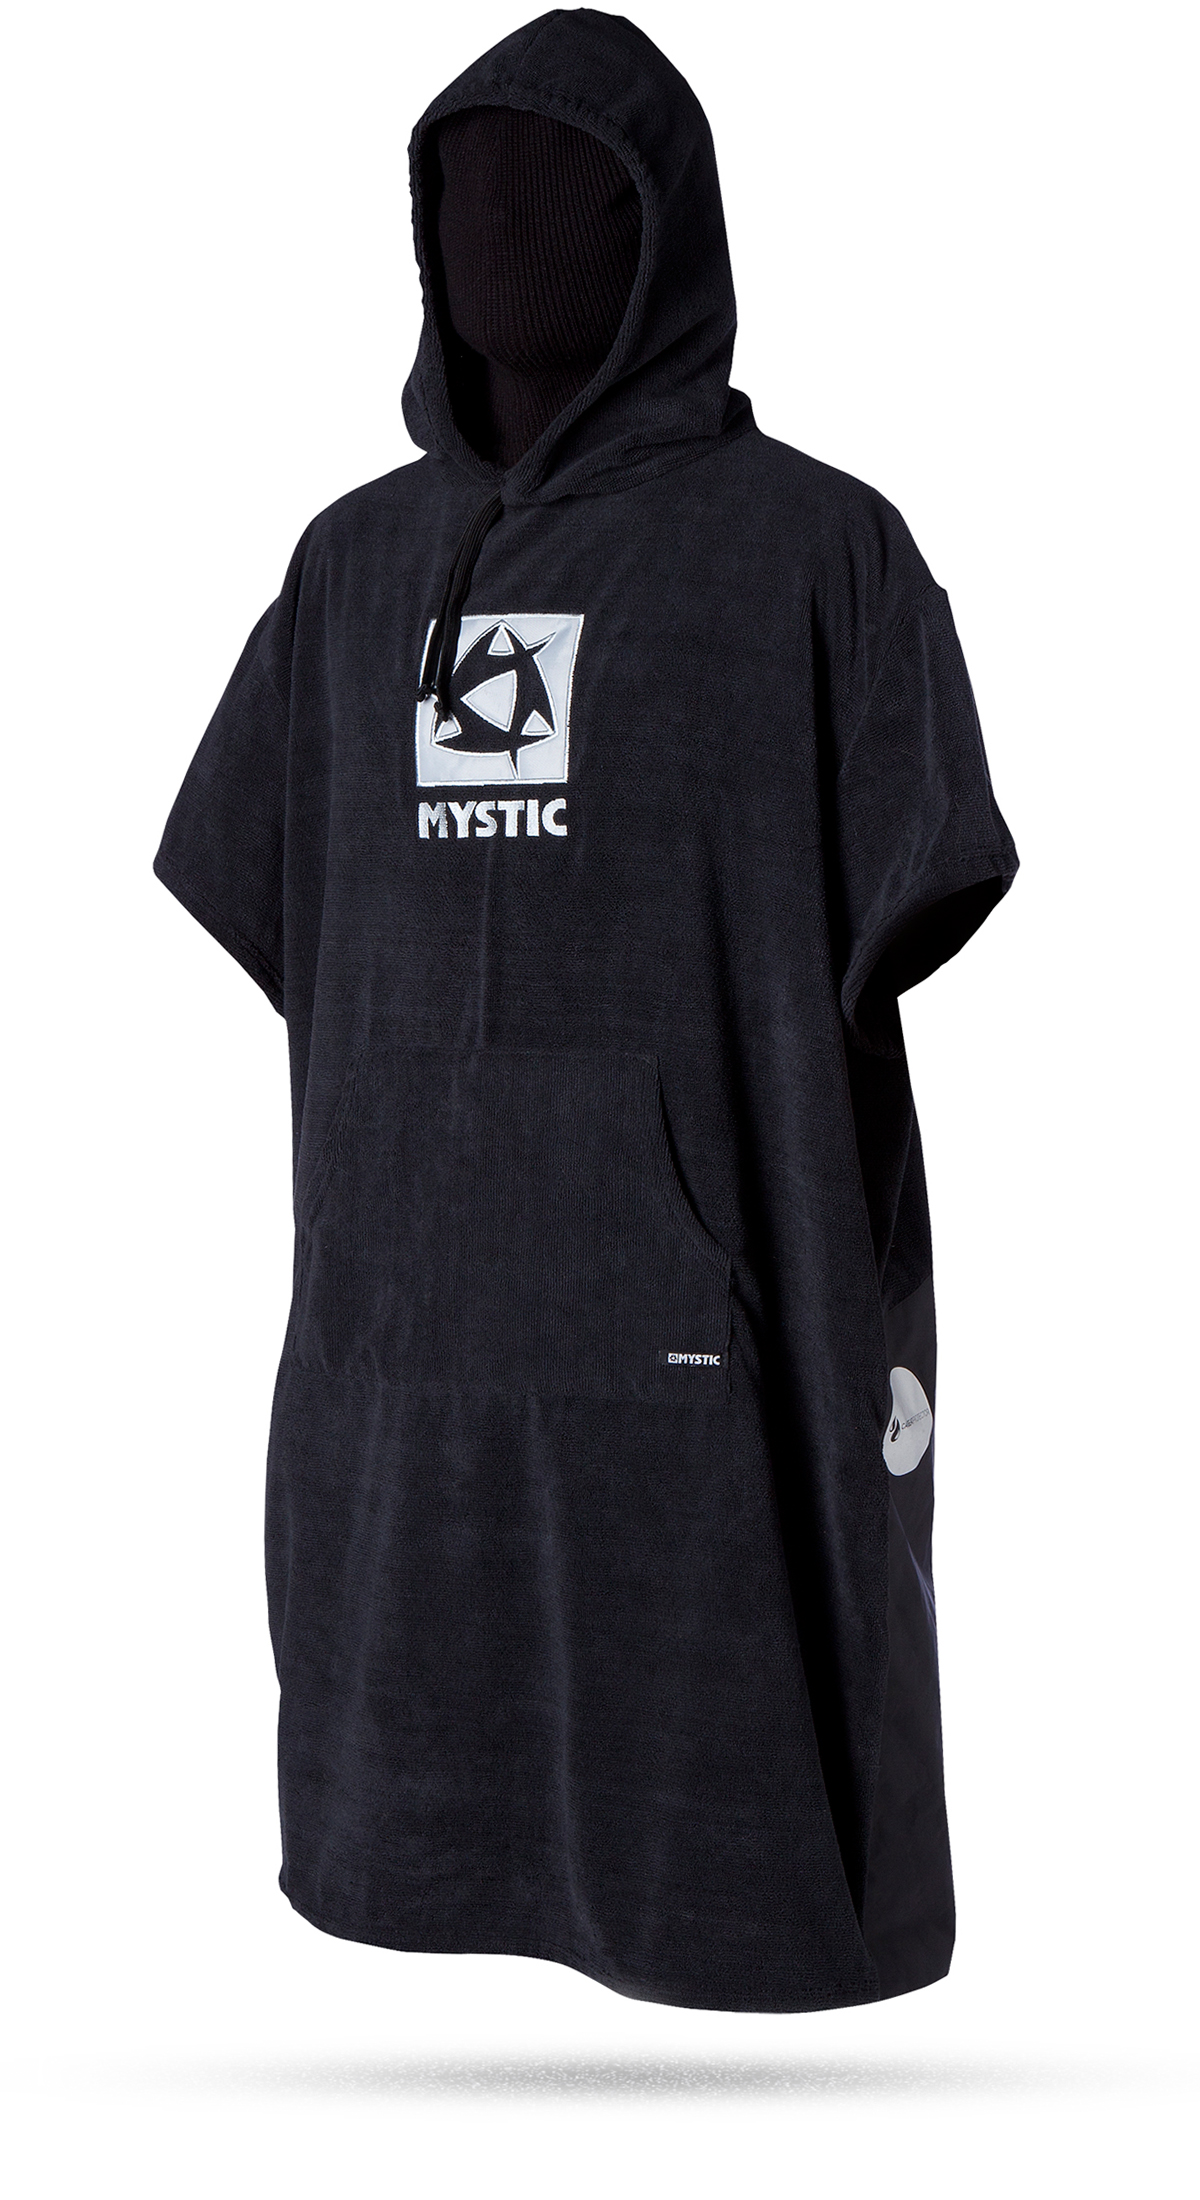 PONCHO DELUXE - BLACK - ONE SIZE MYSTIC 2016